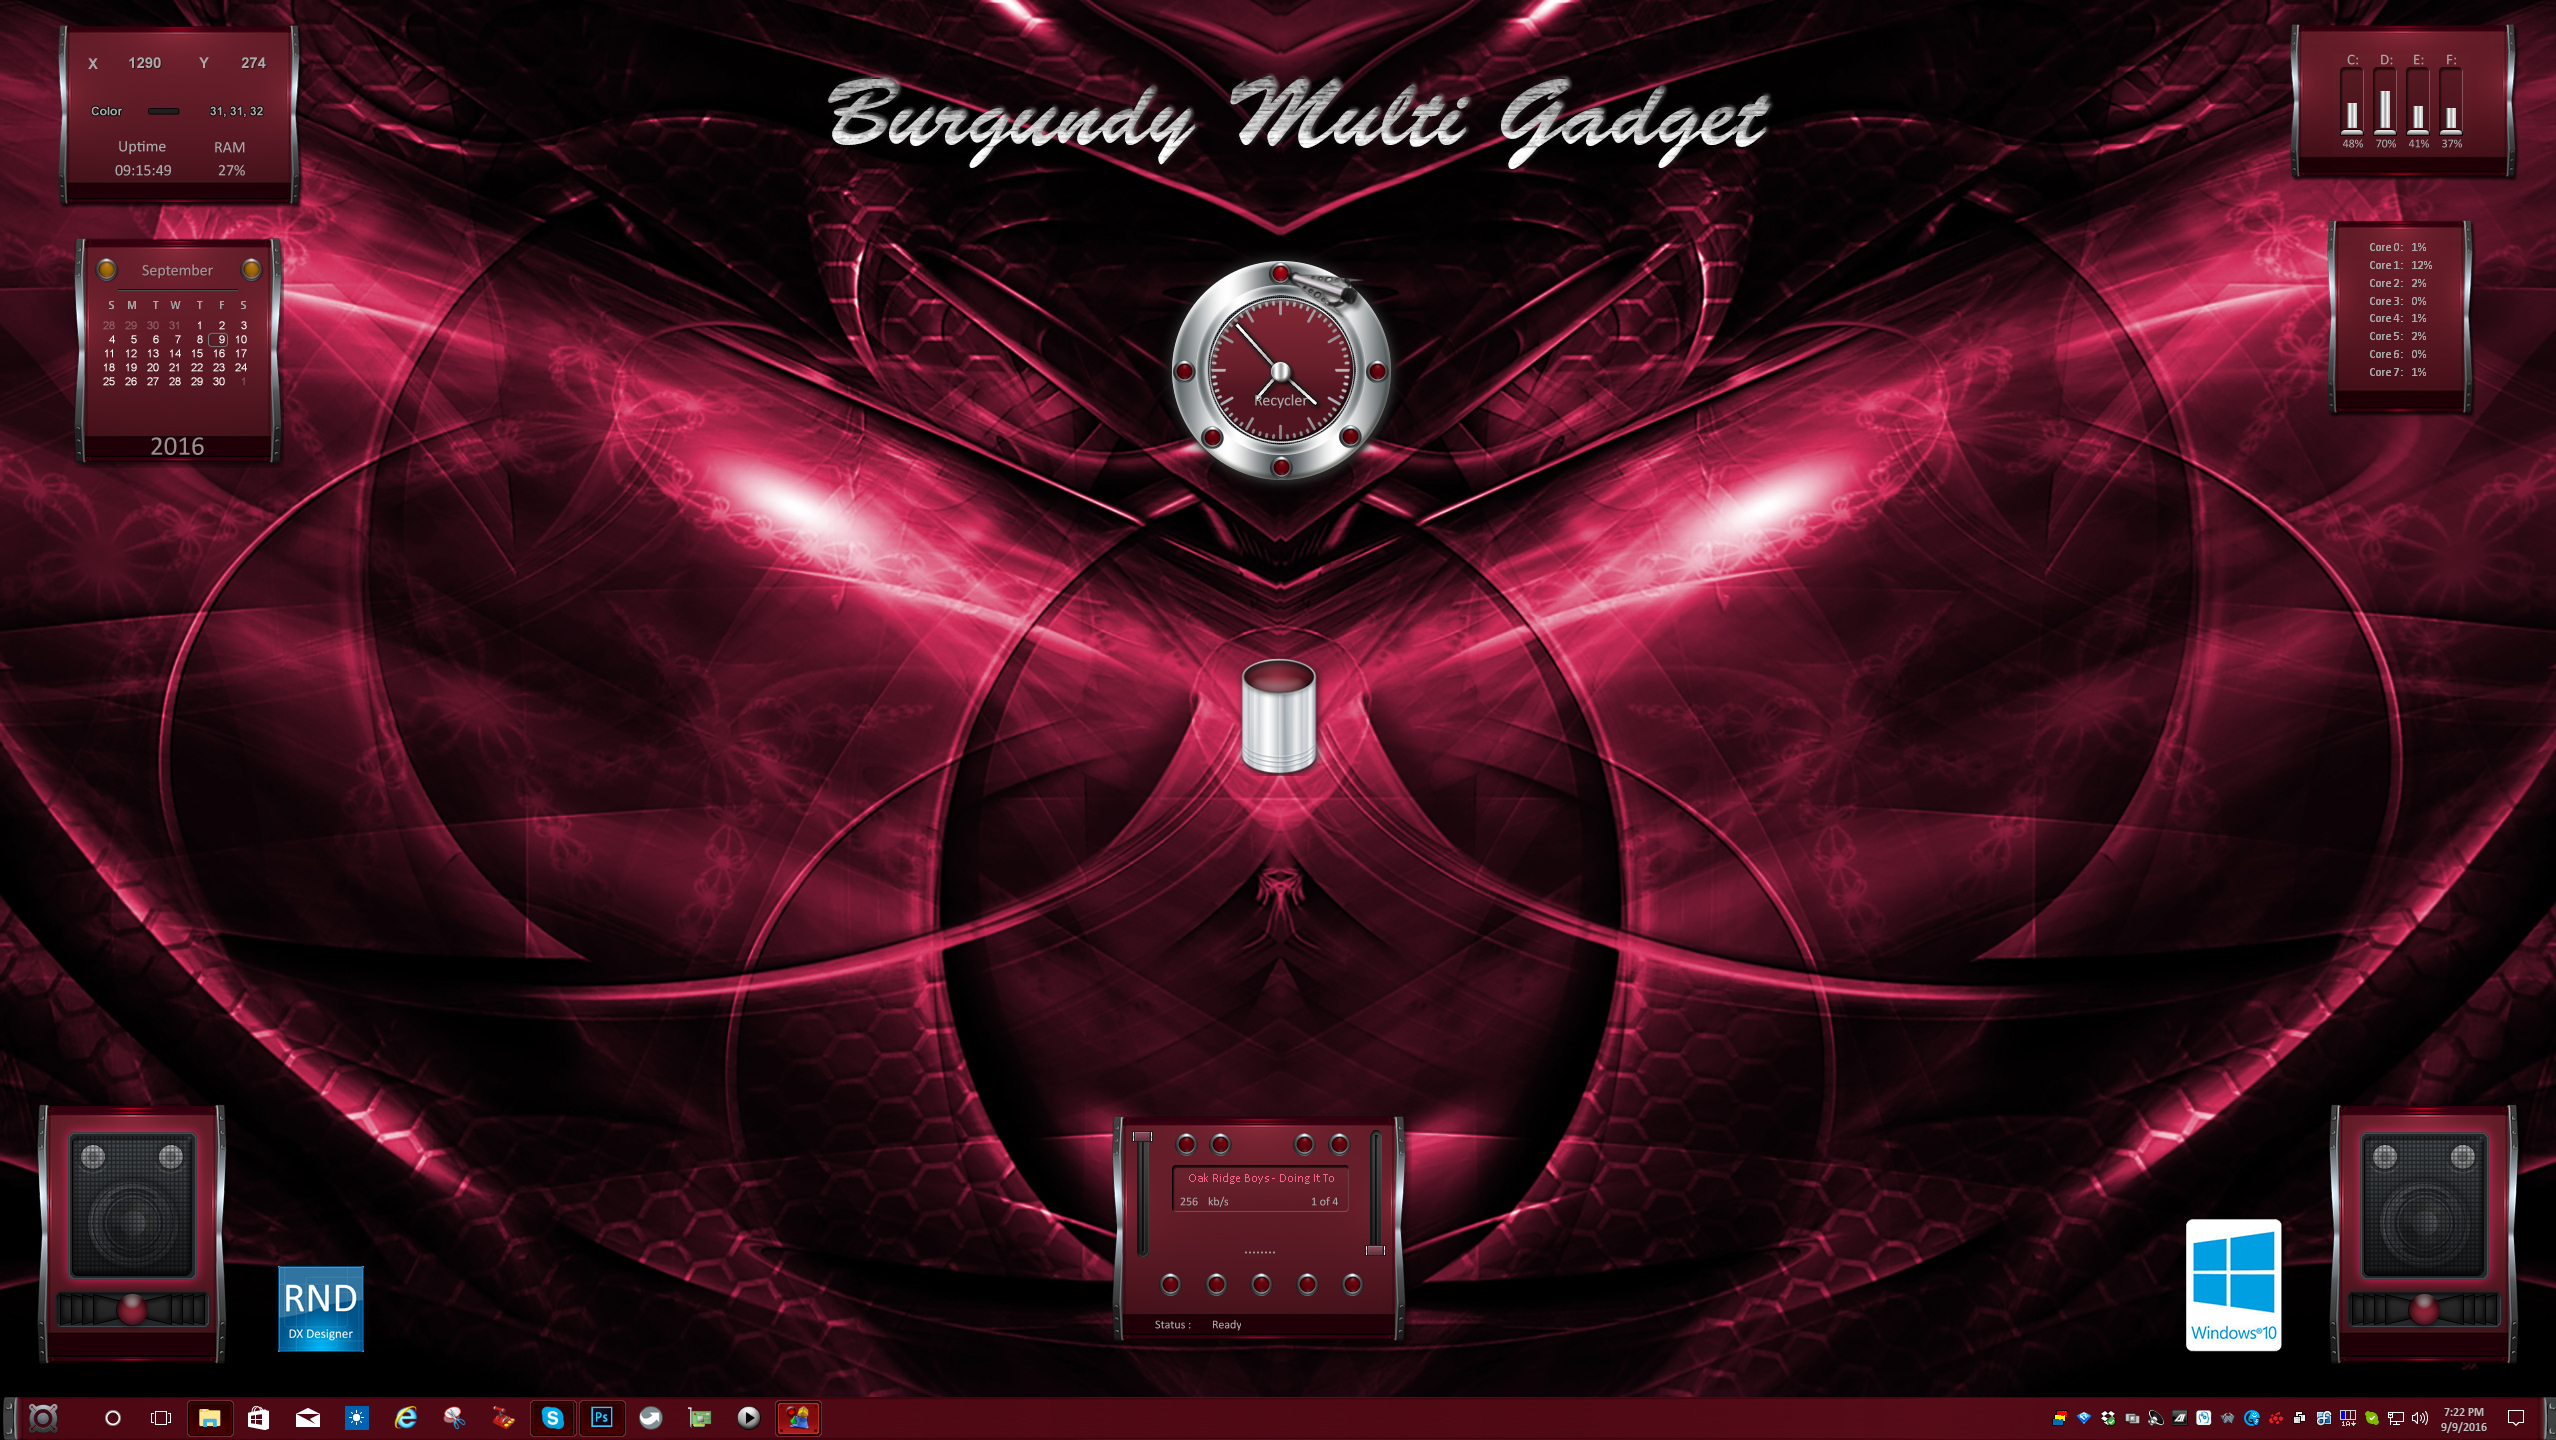 Burgundy Multi Gadget